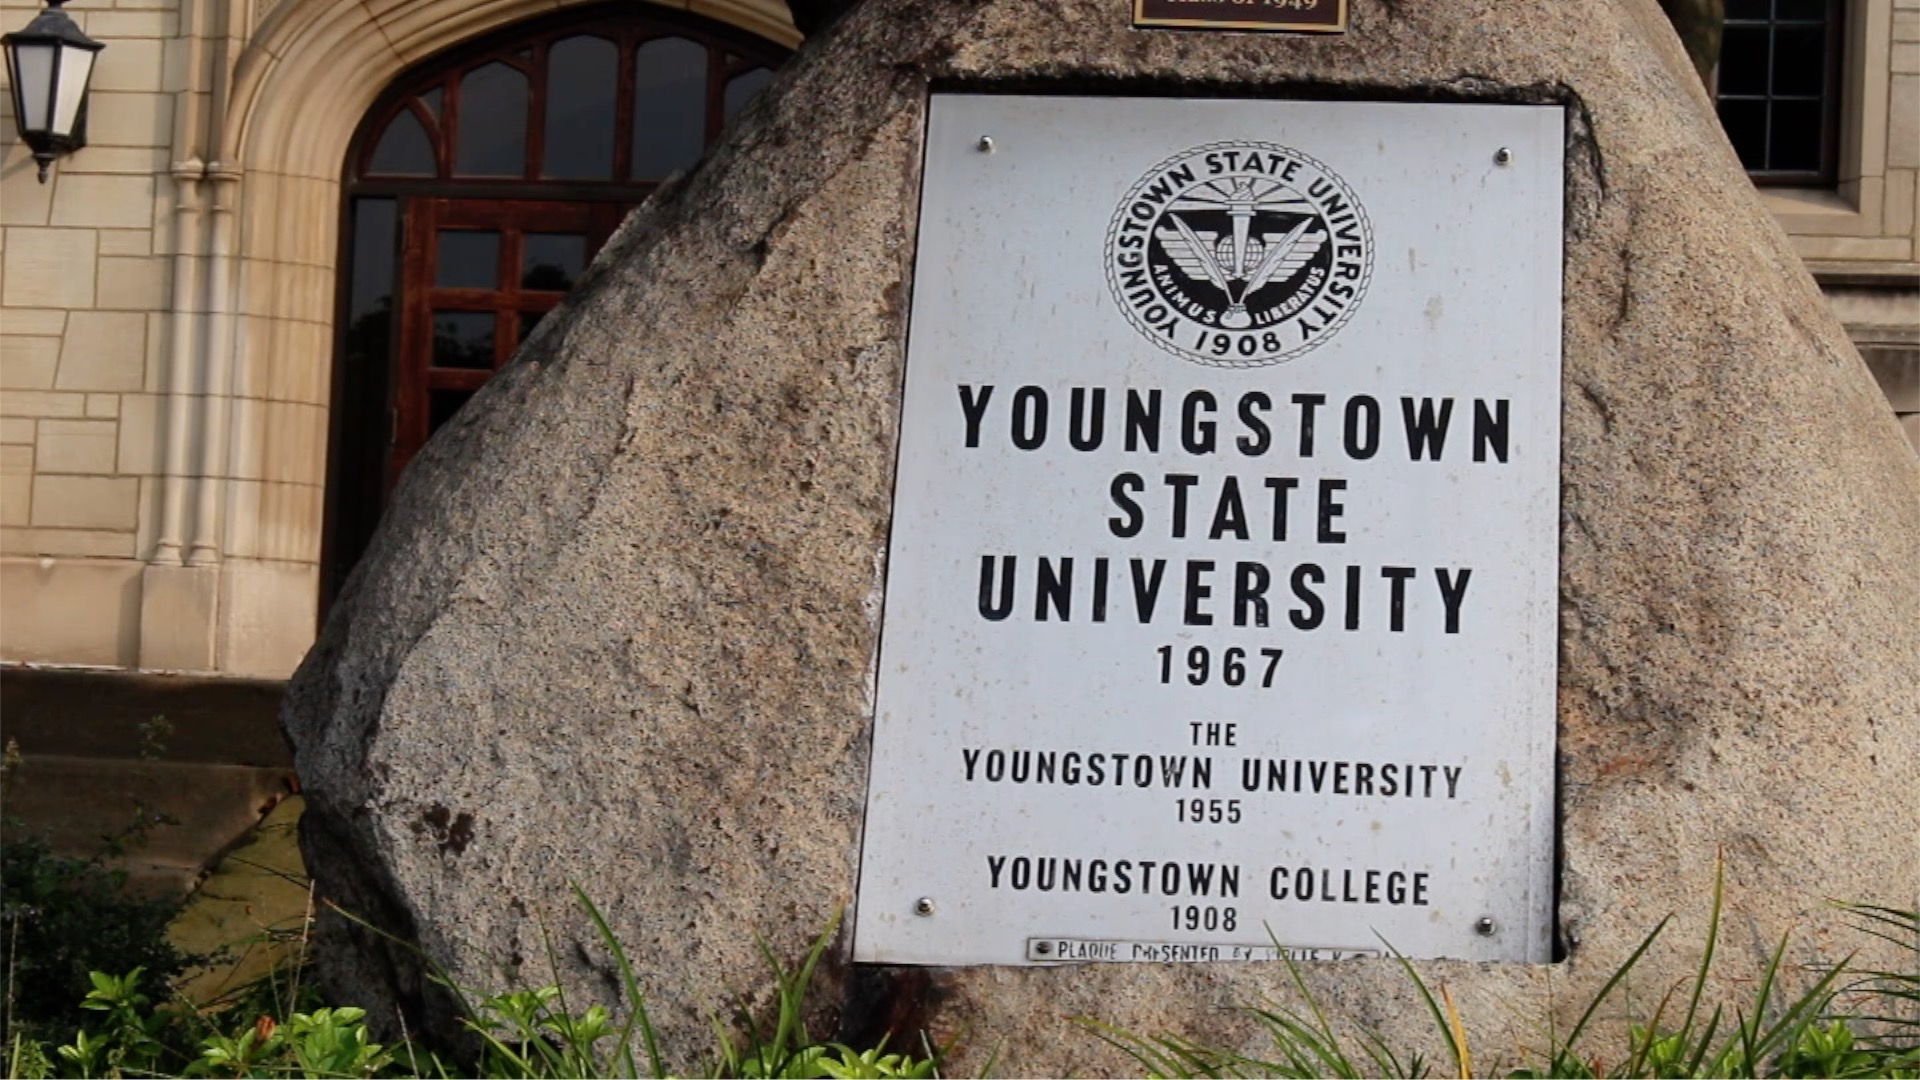 YSU Youngstown State